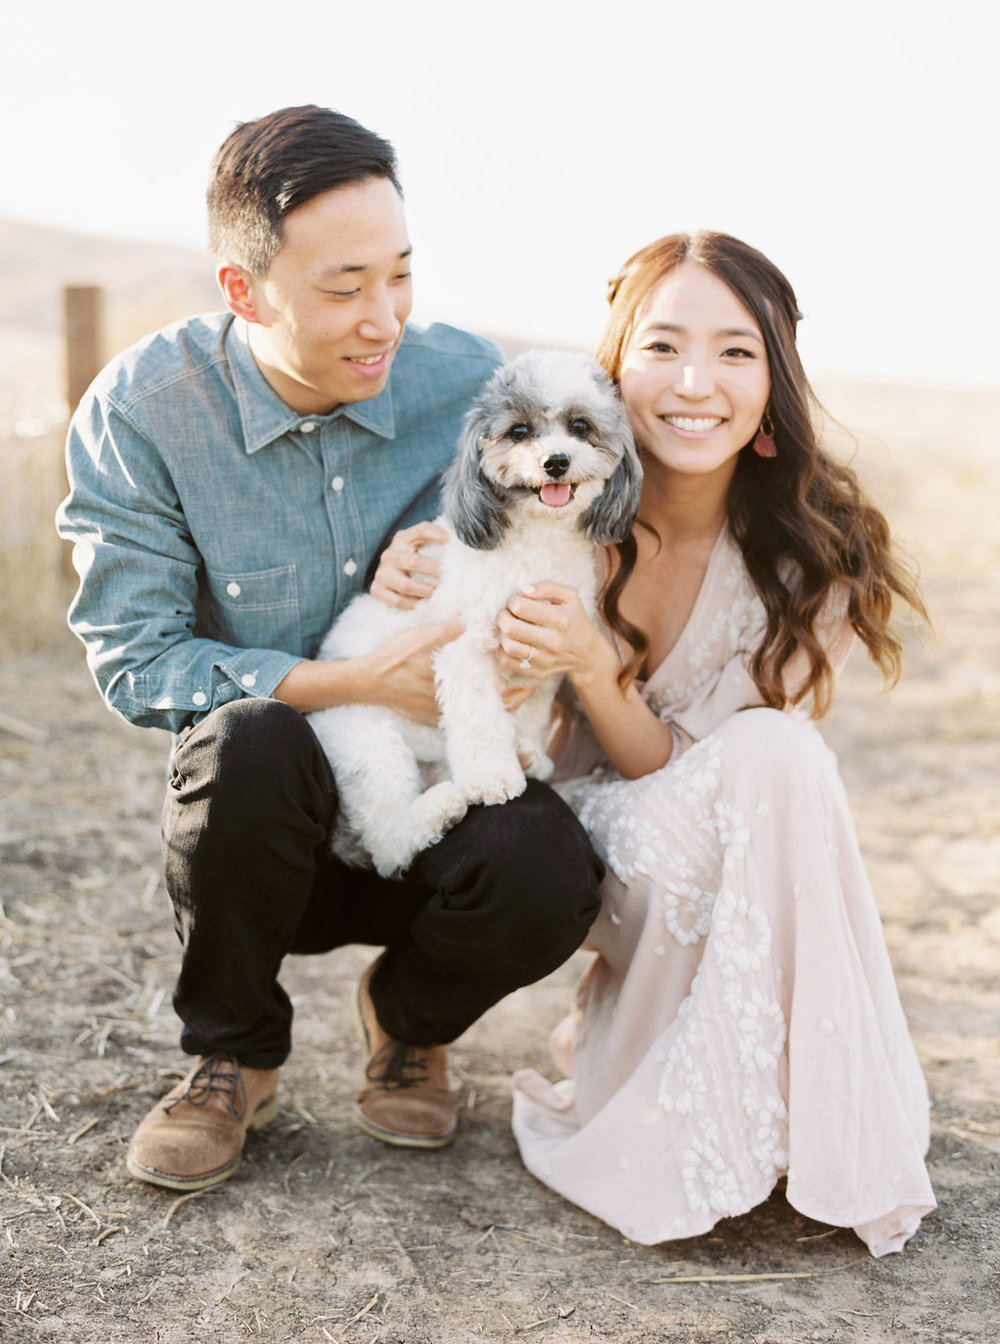 Dreamy golden hour field engagement photo session with dog |  Compass Floral | Wedding Florist in San Diego and Southern California | Meiwen Wang Photography    #gardenromantic       #sandiegowedding     #sandiegoweddingflorist       #orangecountyflorist     #floraldesign       #dreamwedding     #fineartwedding     #fineartflowers     #fineartcuration     #weddingdetails     #weddinginspiration    #engaged #engagementphotos #fieldphotos #dreamyphotos #goldenhour #engagementphotooutfitinspiration  #weddingdog #flowerdog #floraldogcollar #dogcollarflower #dogcollar #puppydog #doglovers #dogsandflowers #puppyeyes #puppycuddles #shichons #bichon #shihtzu